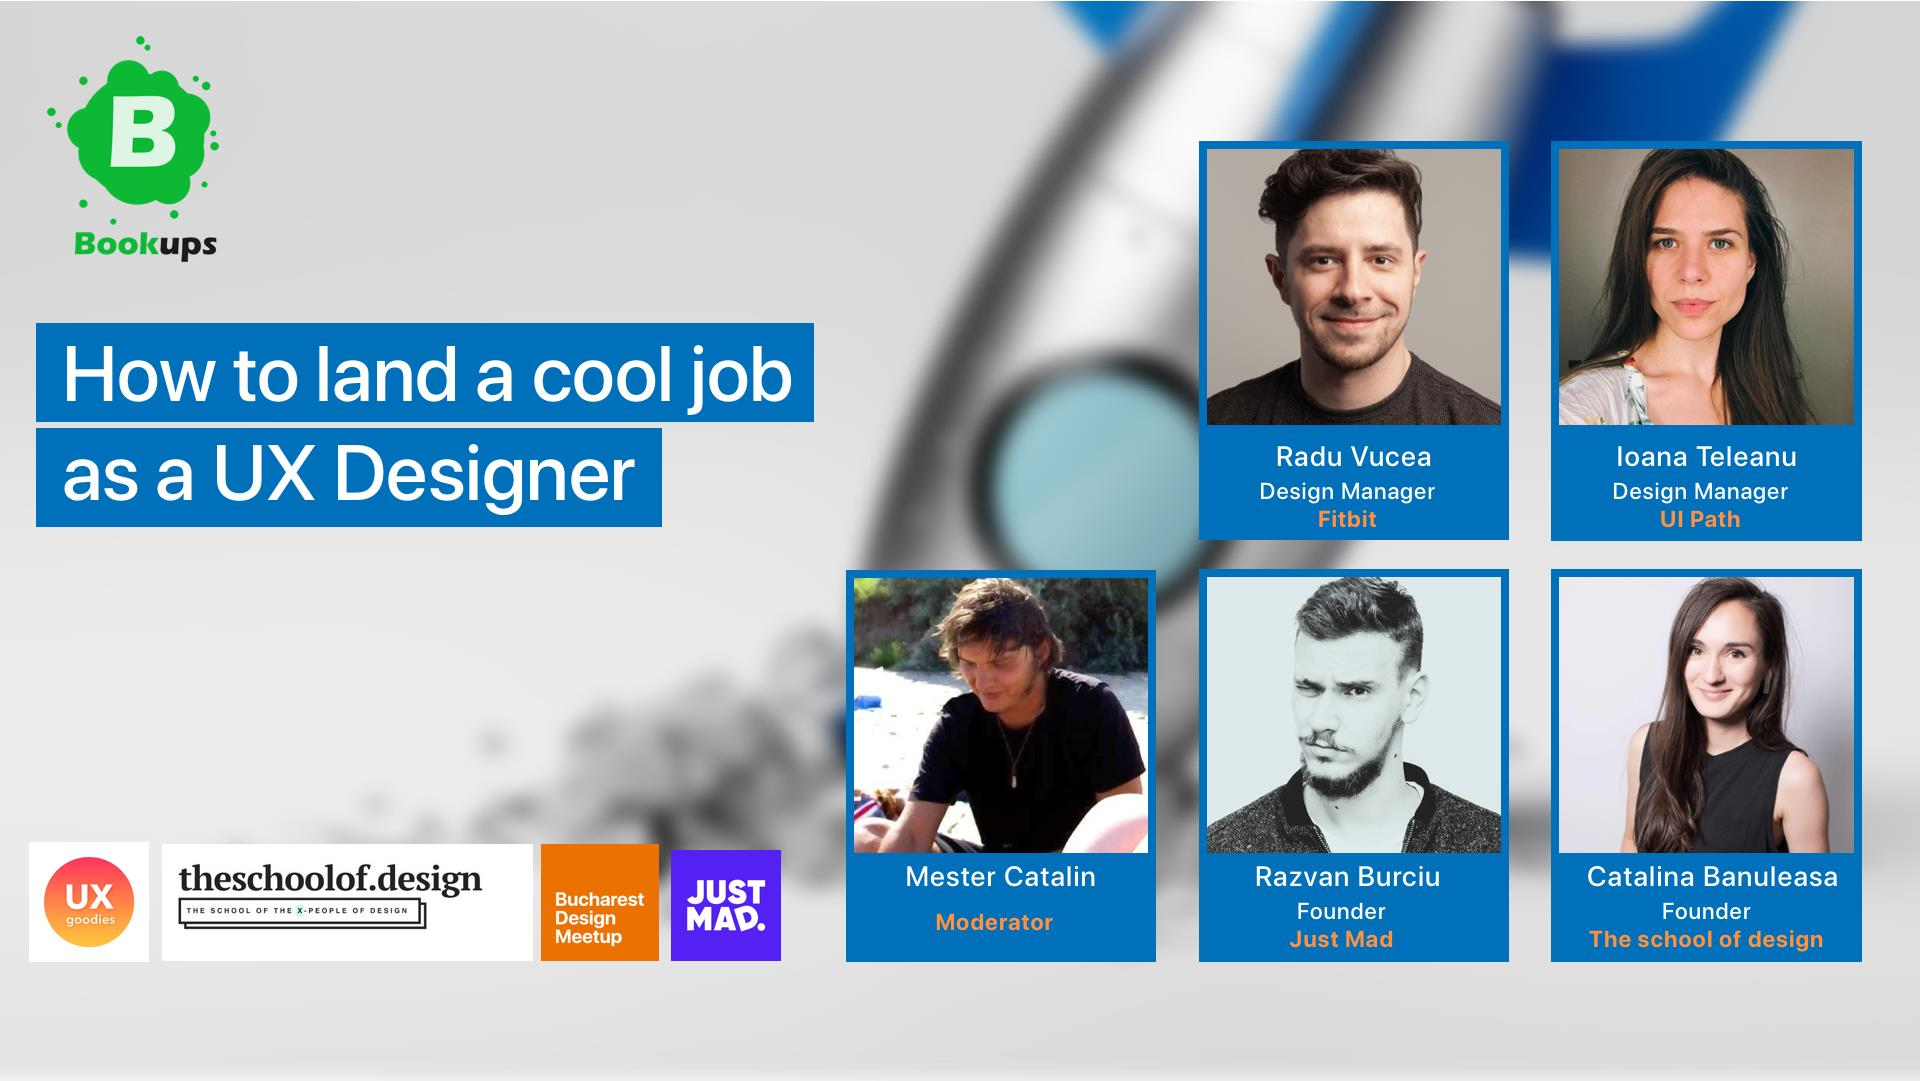 How to land a cool job as a UX Designer